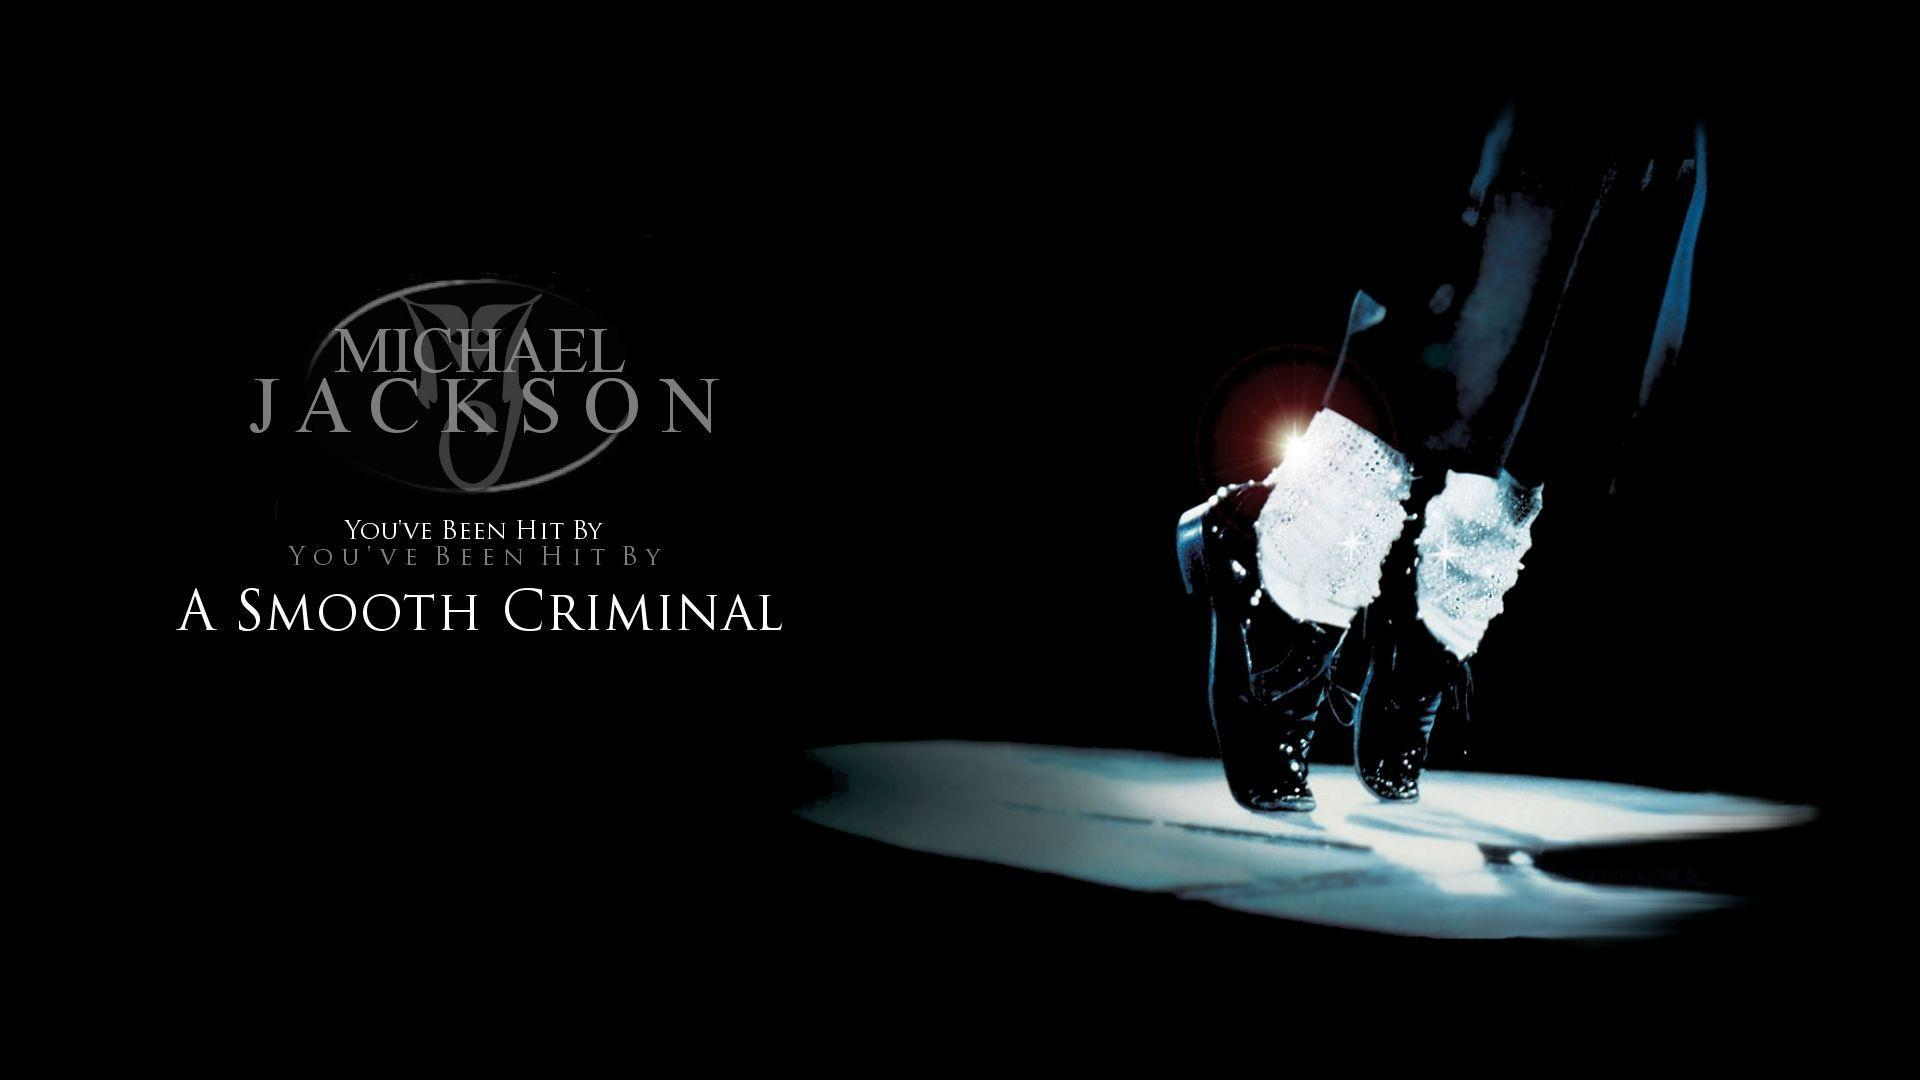 King of Pop Michael Jackson Image 08 | hdwallpapers-